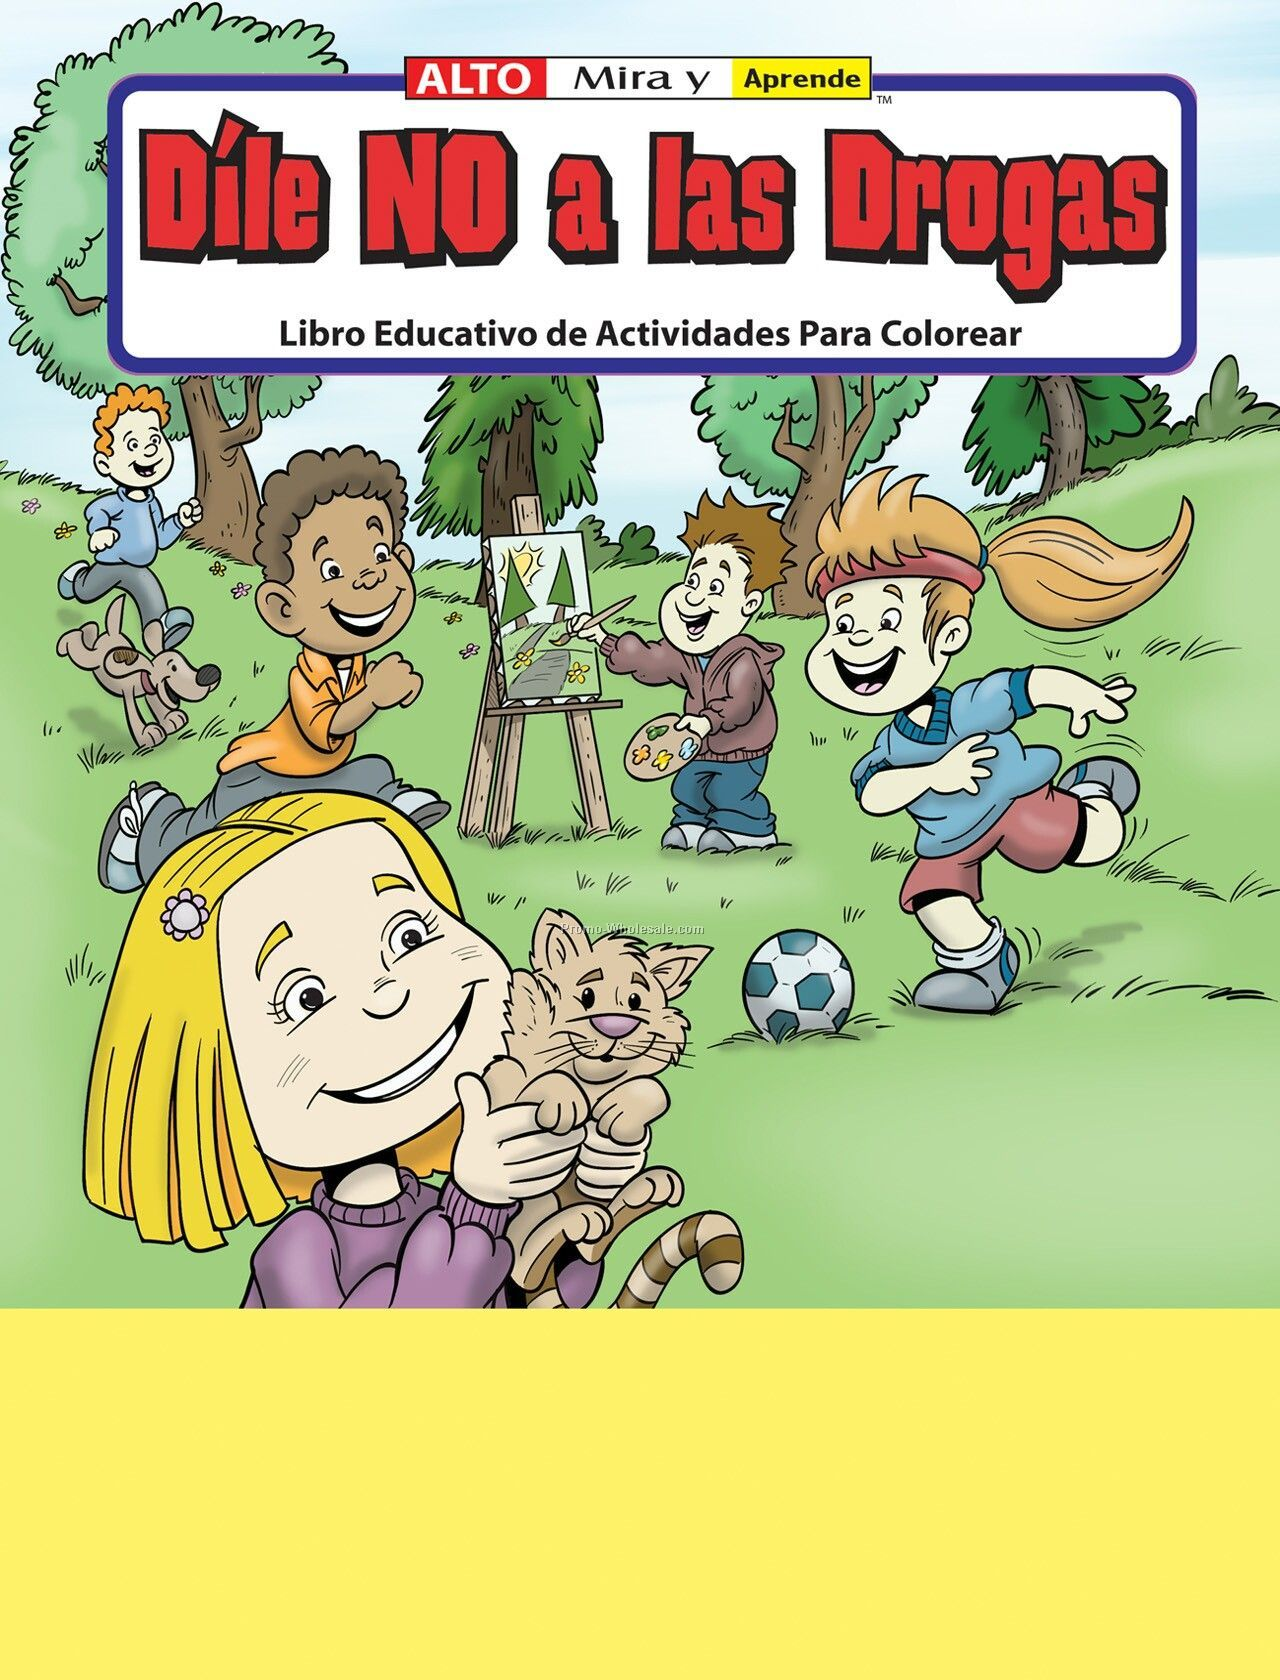 Stay Drug Free - Dile No A Las Drogas Spanish Coloring Fun Pack